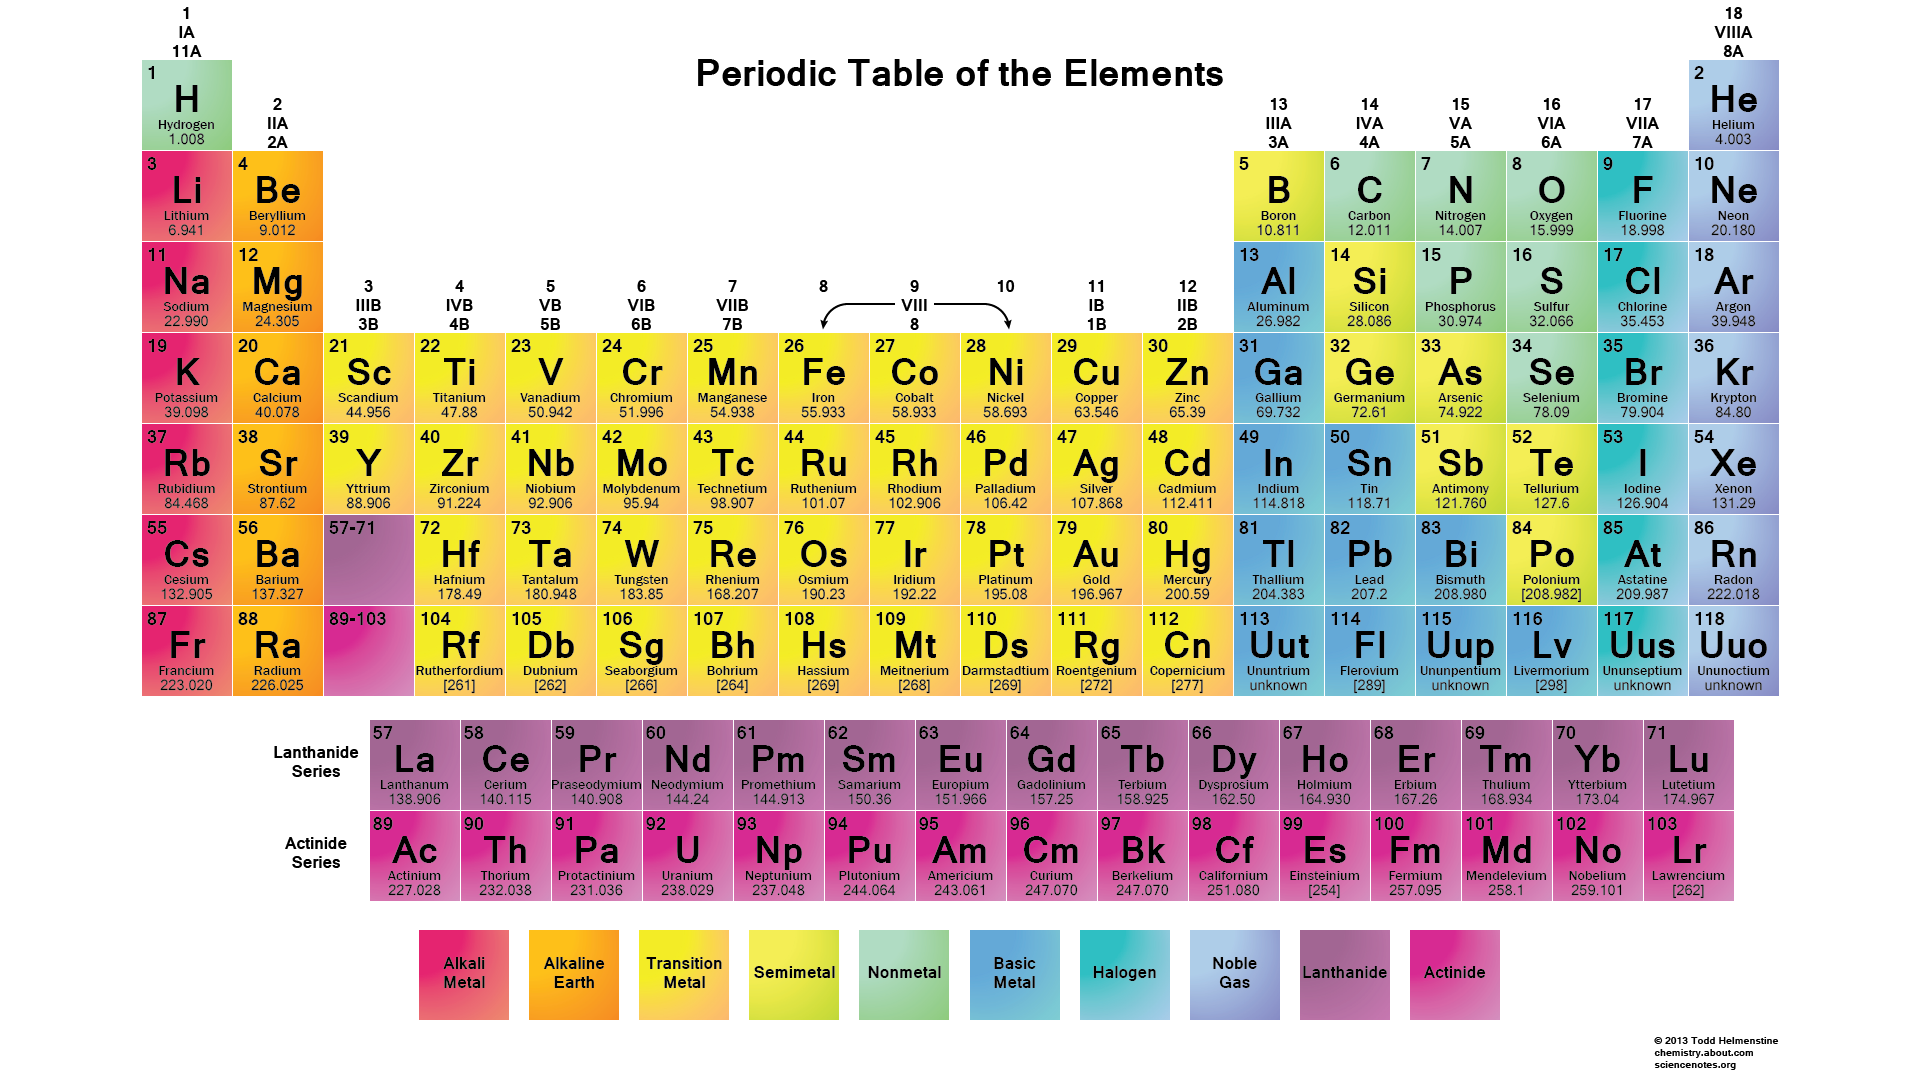 Te in periodic table gallery periodic table images po in periodic table images periodic table images po element periodic table images periodic table images gamestrikefo Image collections